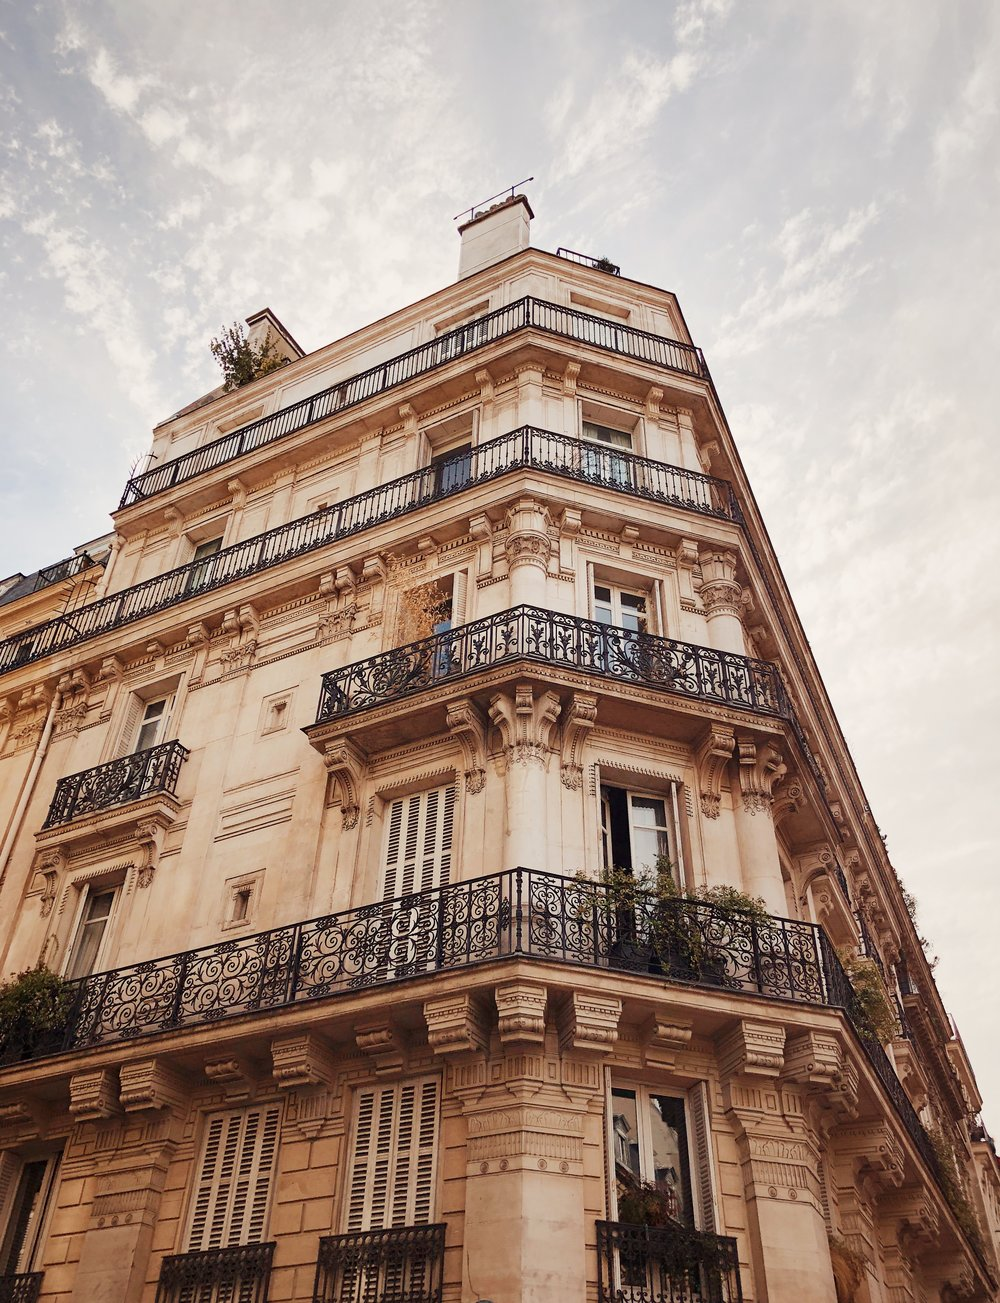 My new, temporary neighborhood in Paris, France.